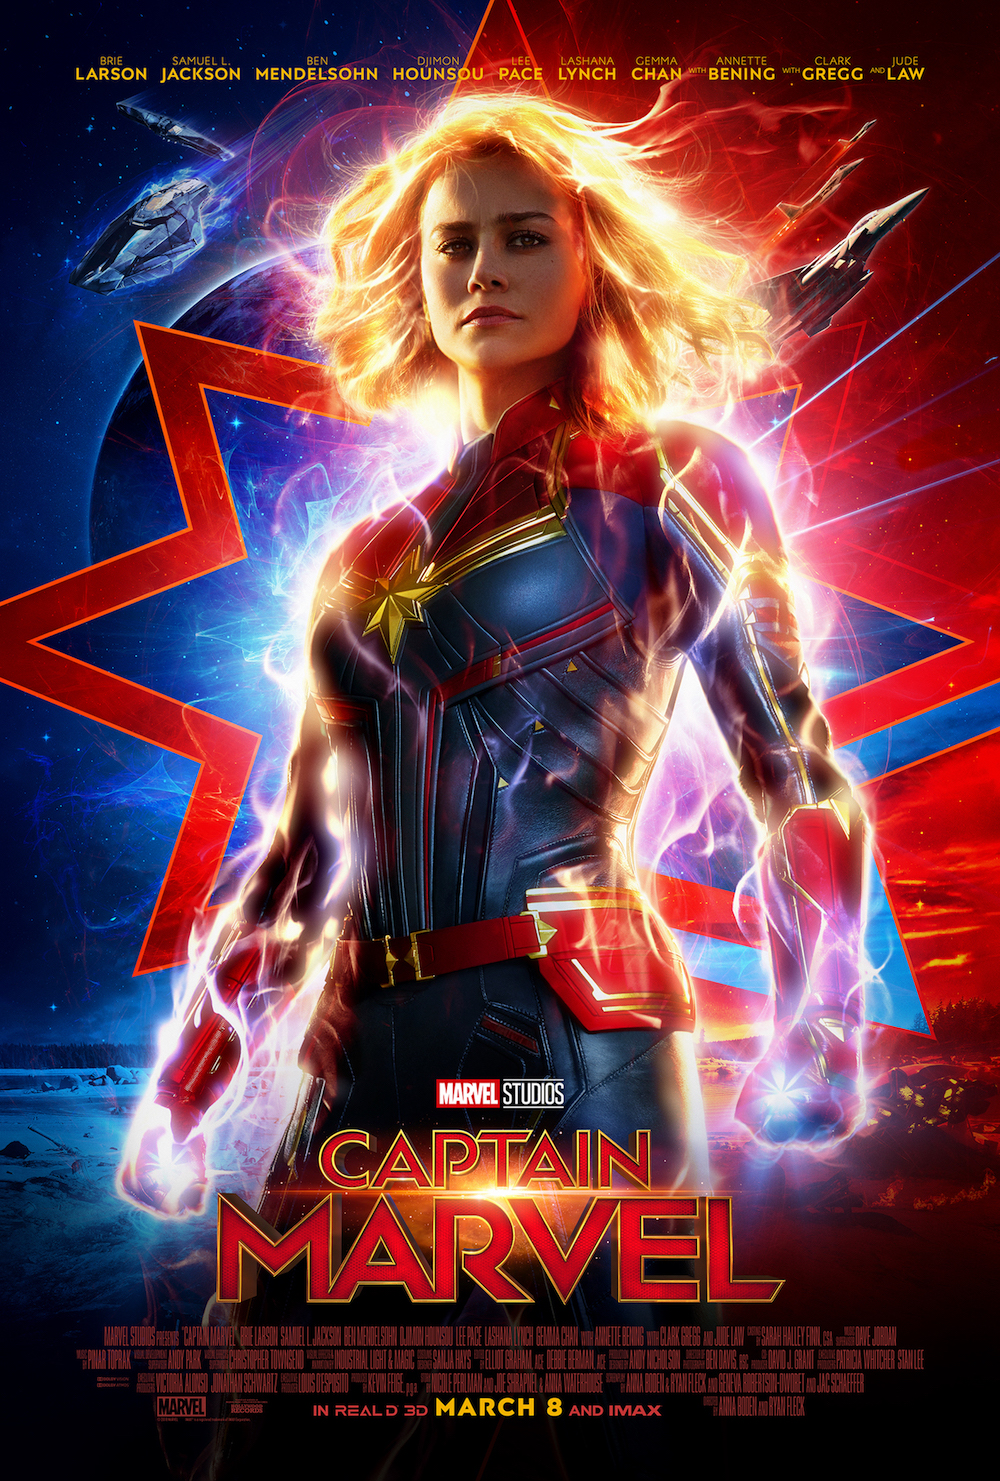 I Have A Secret About The New Film Captain Marvel!